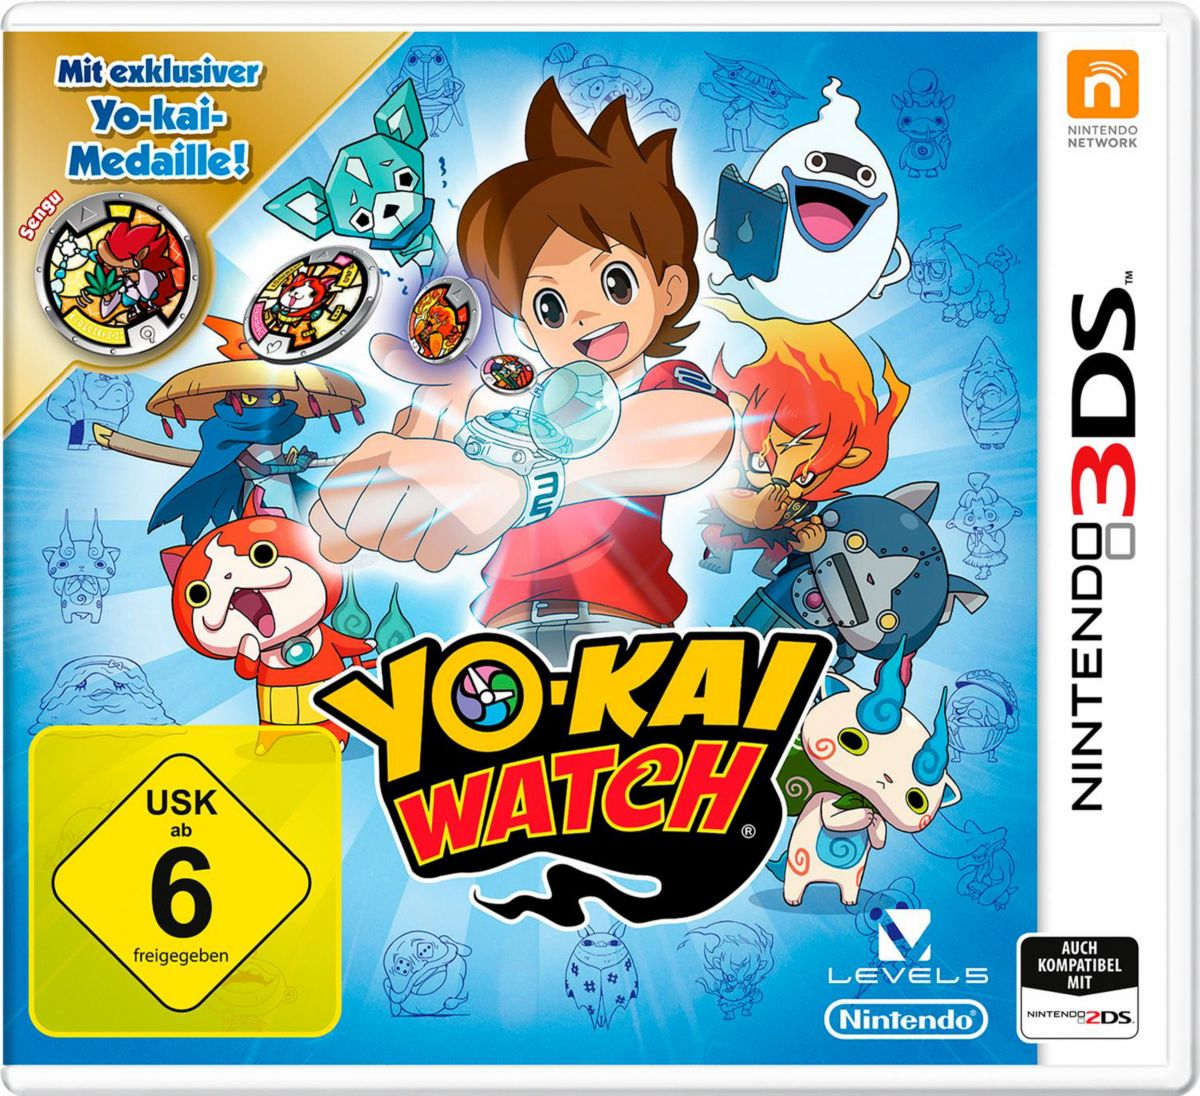 super popular e30a6 0270b Yo-Kai Watch Special Edition inklusive Medaille 3DS